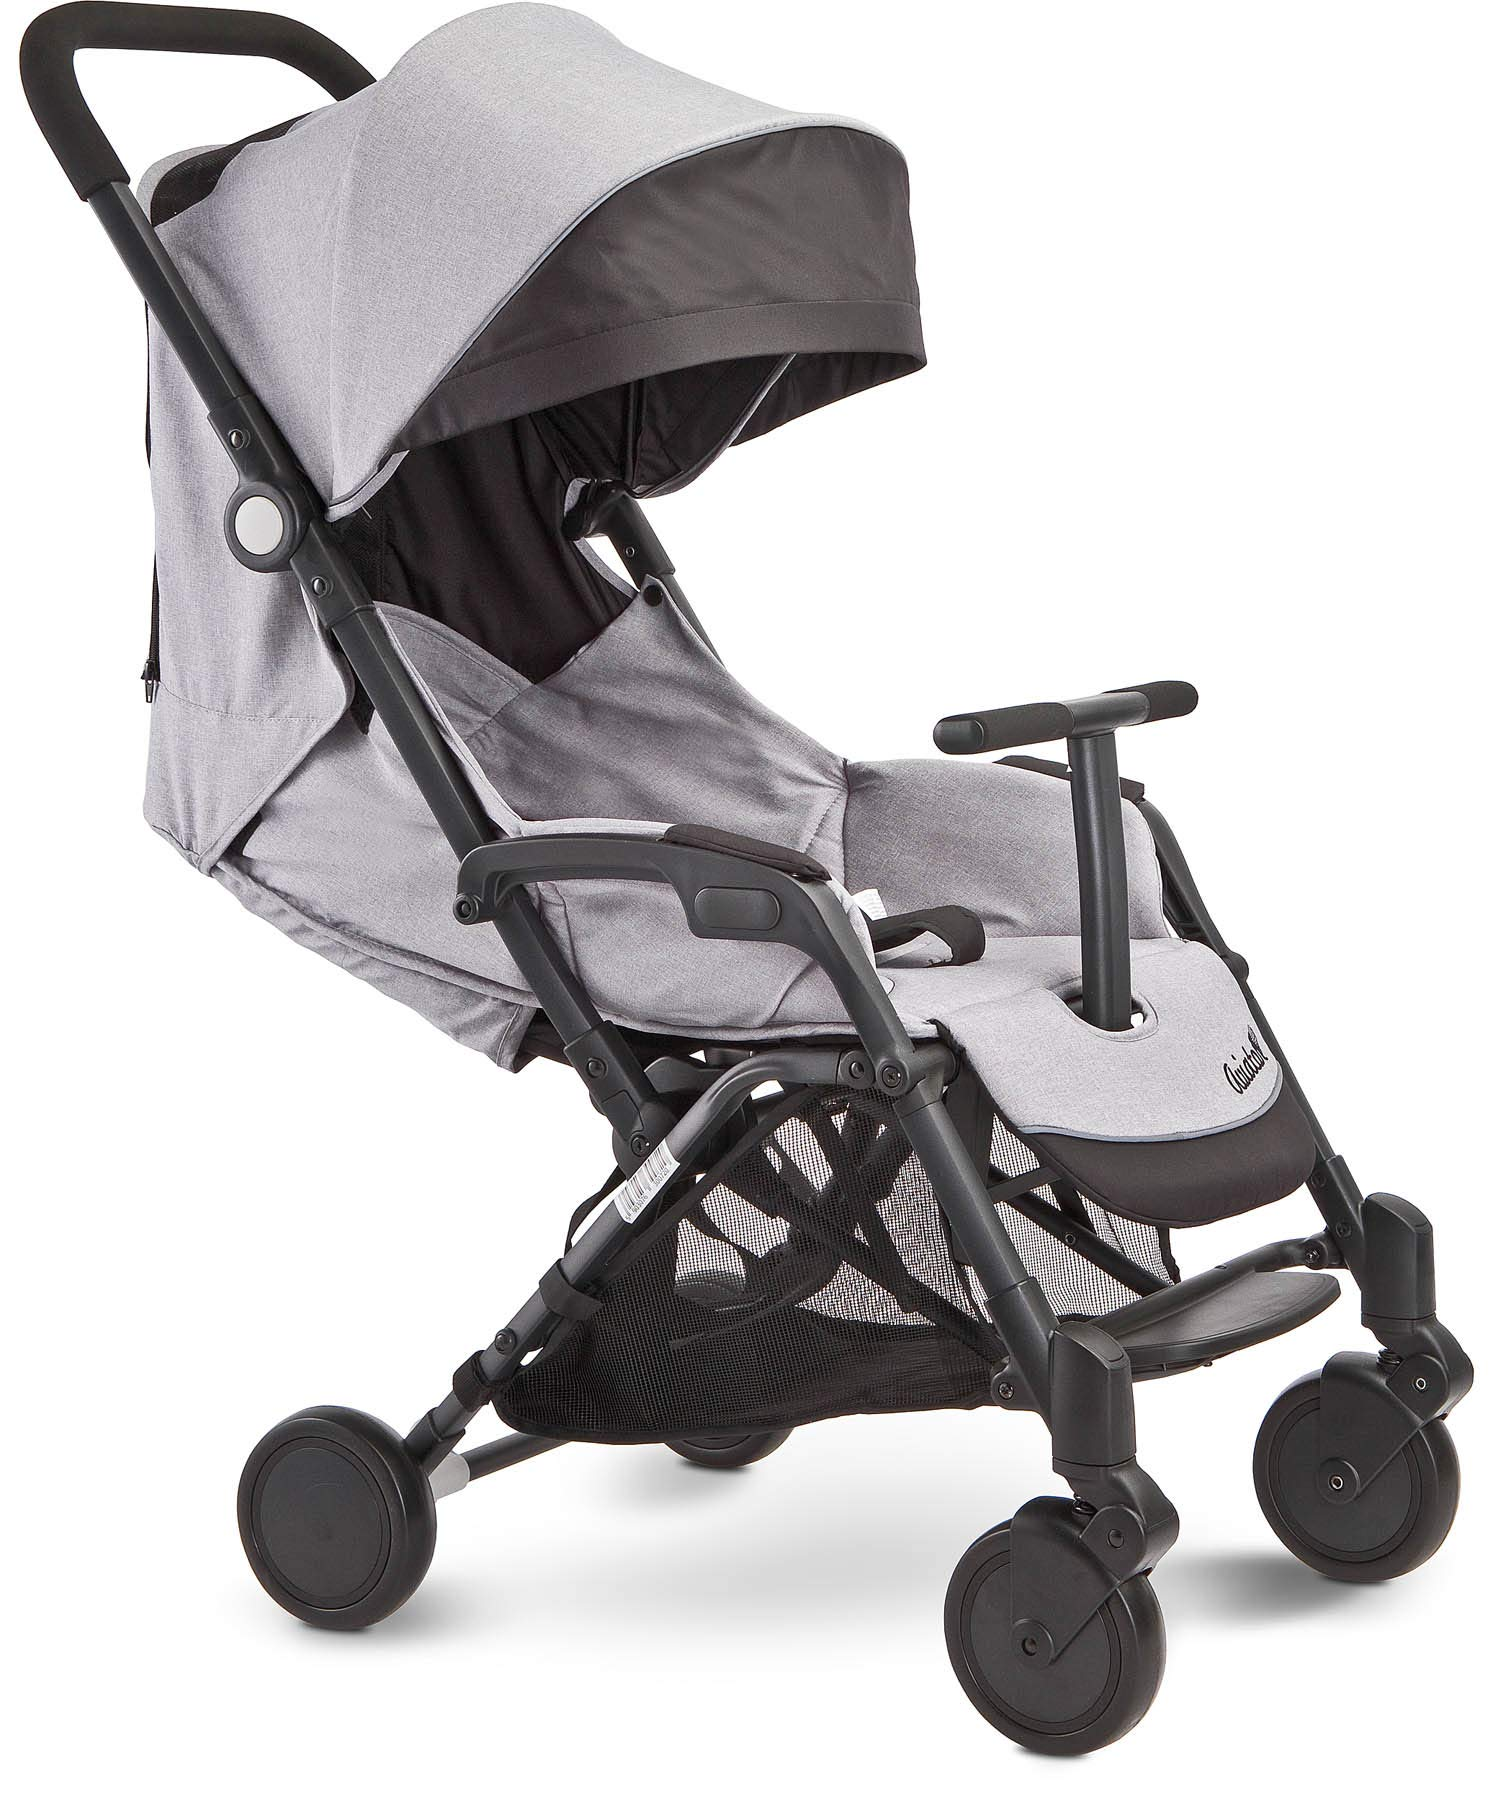 Aviator Ultralight Pushchair Grey Caretero Stroller for babies from 6 months Month weighing up to 15 kg Compact size and light weight (7.1kg) for easy manoeuvring and transport Eva foam wheels front with cushioning for driving comfort 8